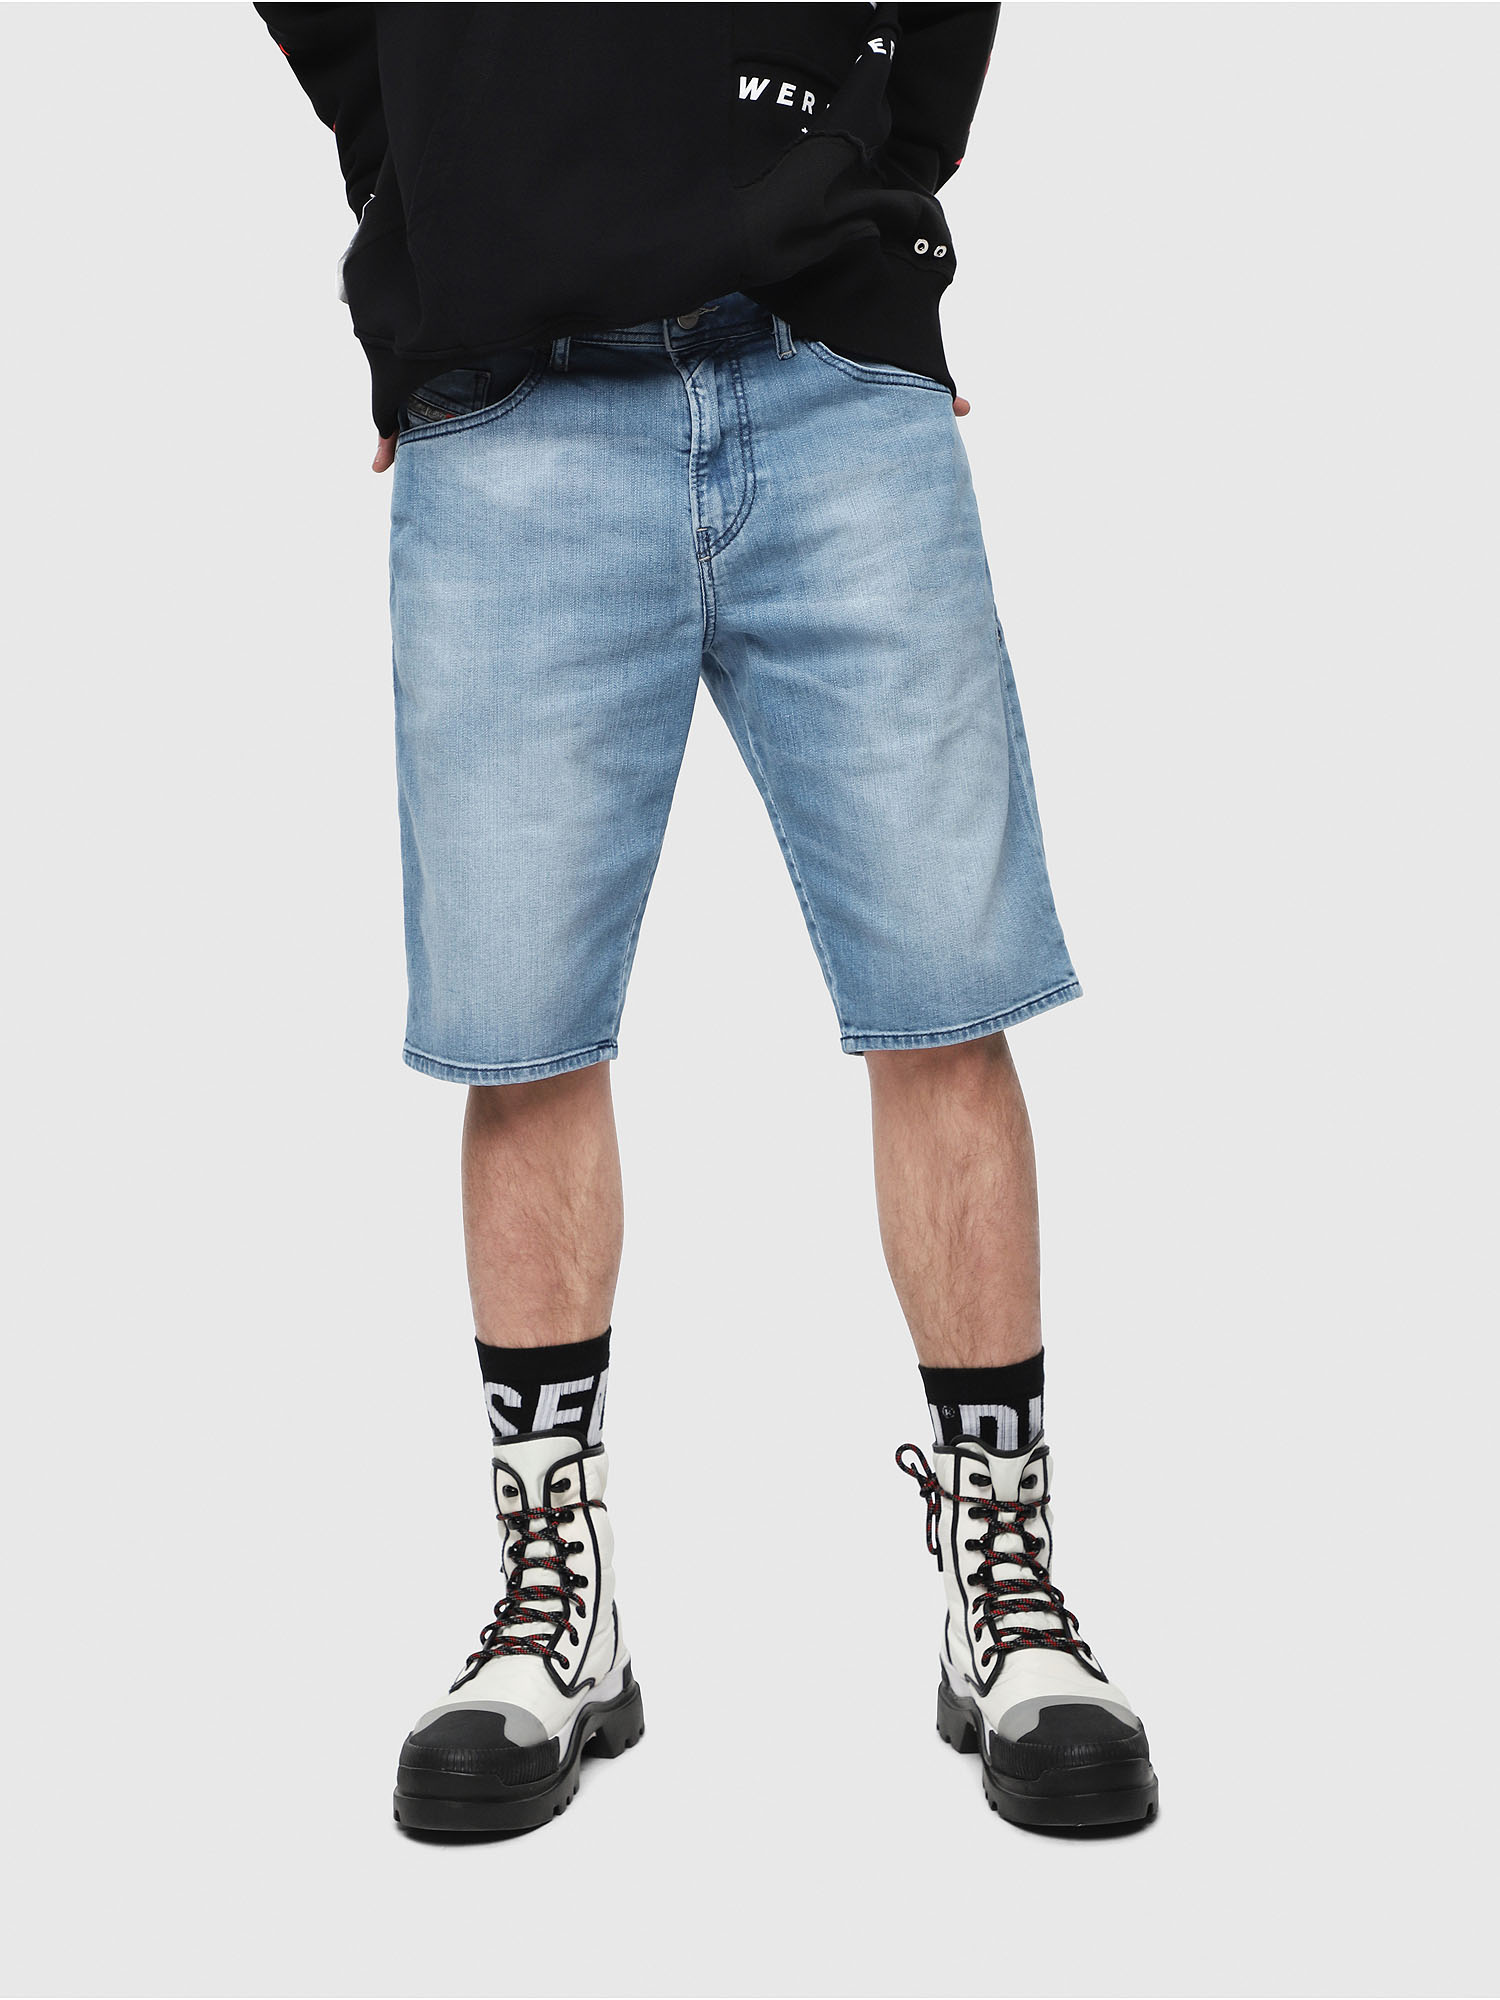 Diesel - THOSHORT,  - Shorts - Image 1